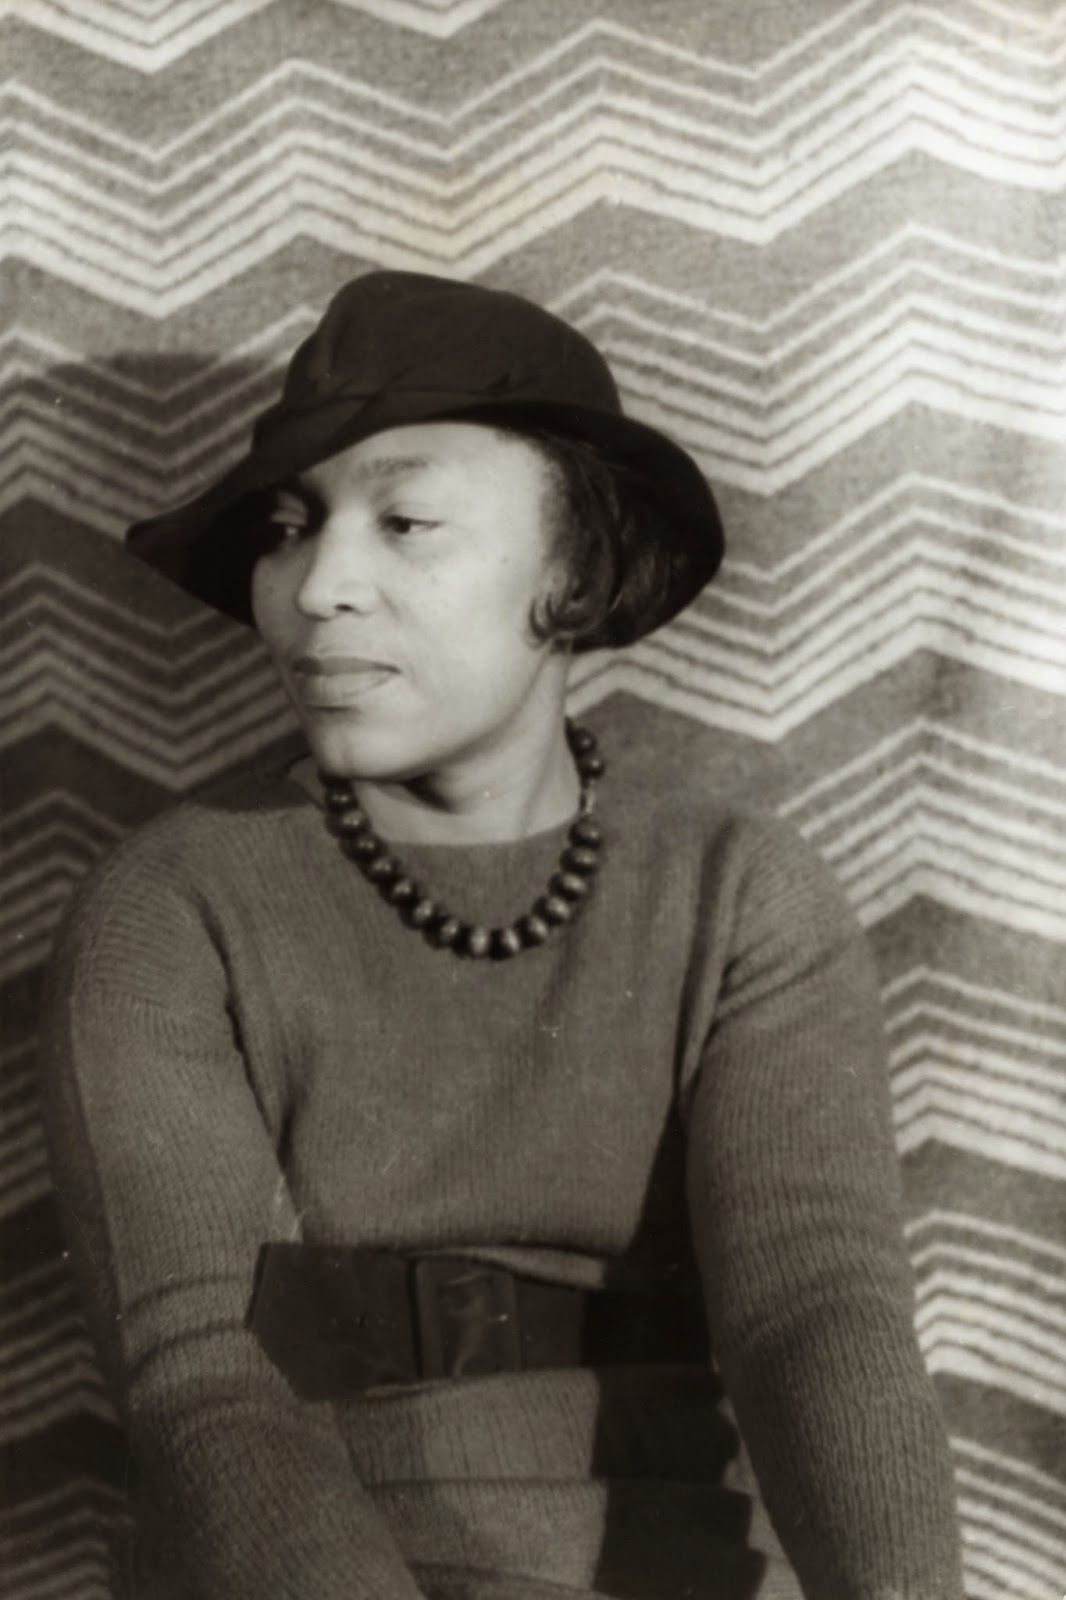 Photo of Zora Neale Hurston.  Image source: http://upload.wikimedia.org/wikipedia/commons/b/b9/Zora_Neale_Hurston_(1938).jpg